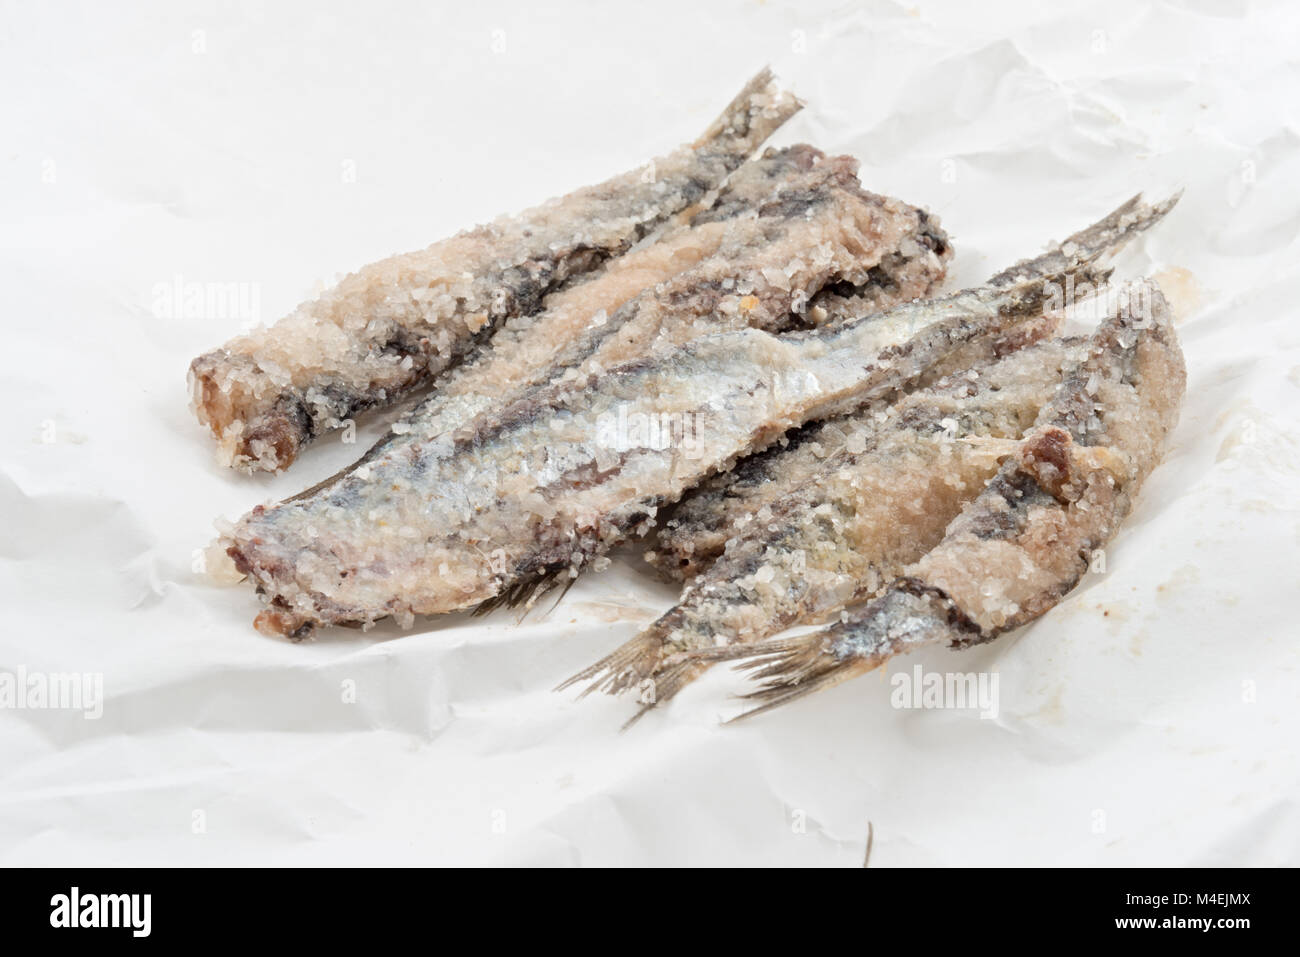 sardines salted anchovies on paper 4 - Stock Image